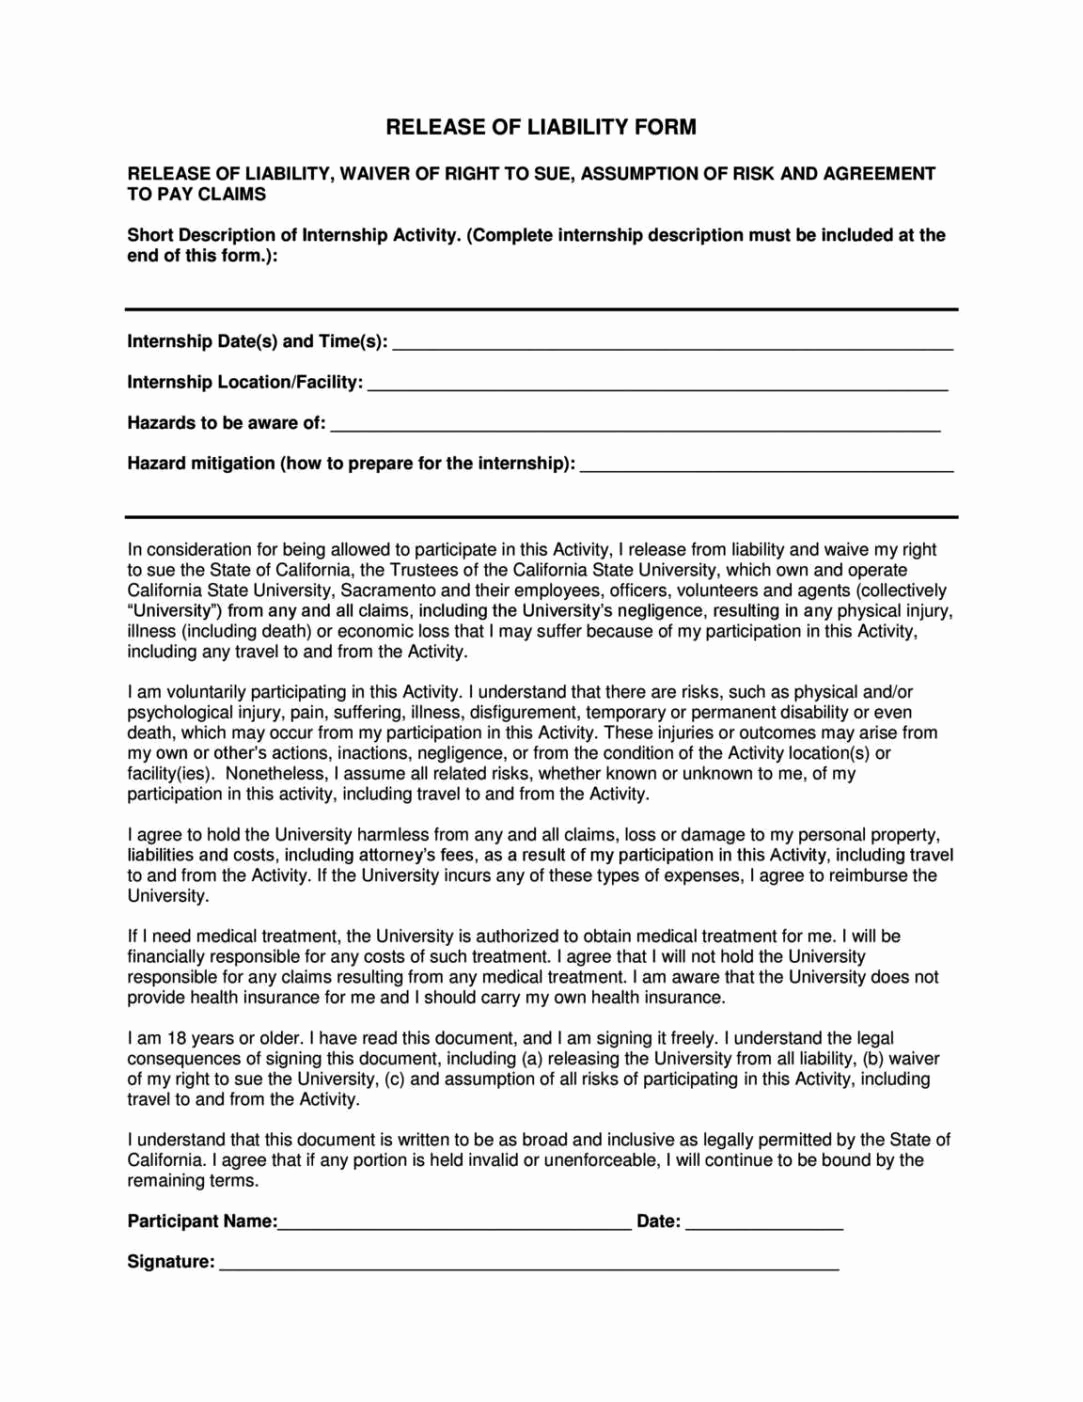 Release Of Liability form Template Inspirational General Liability Release form Template Sampletemplatess